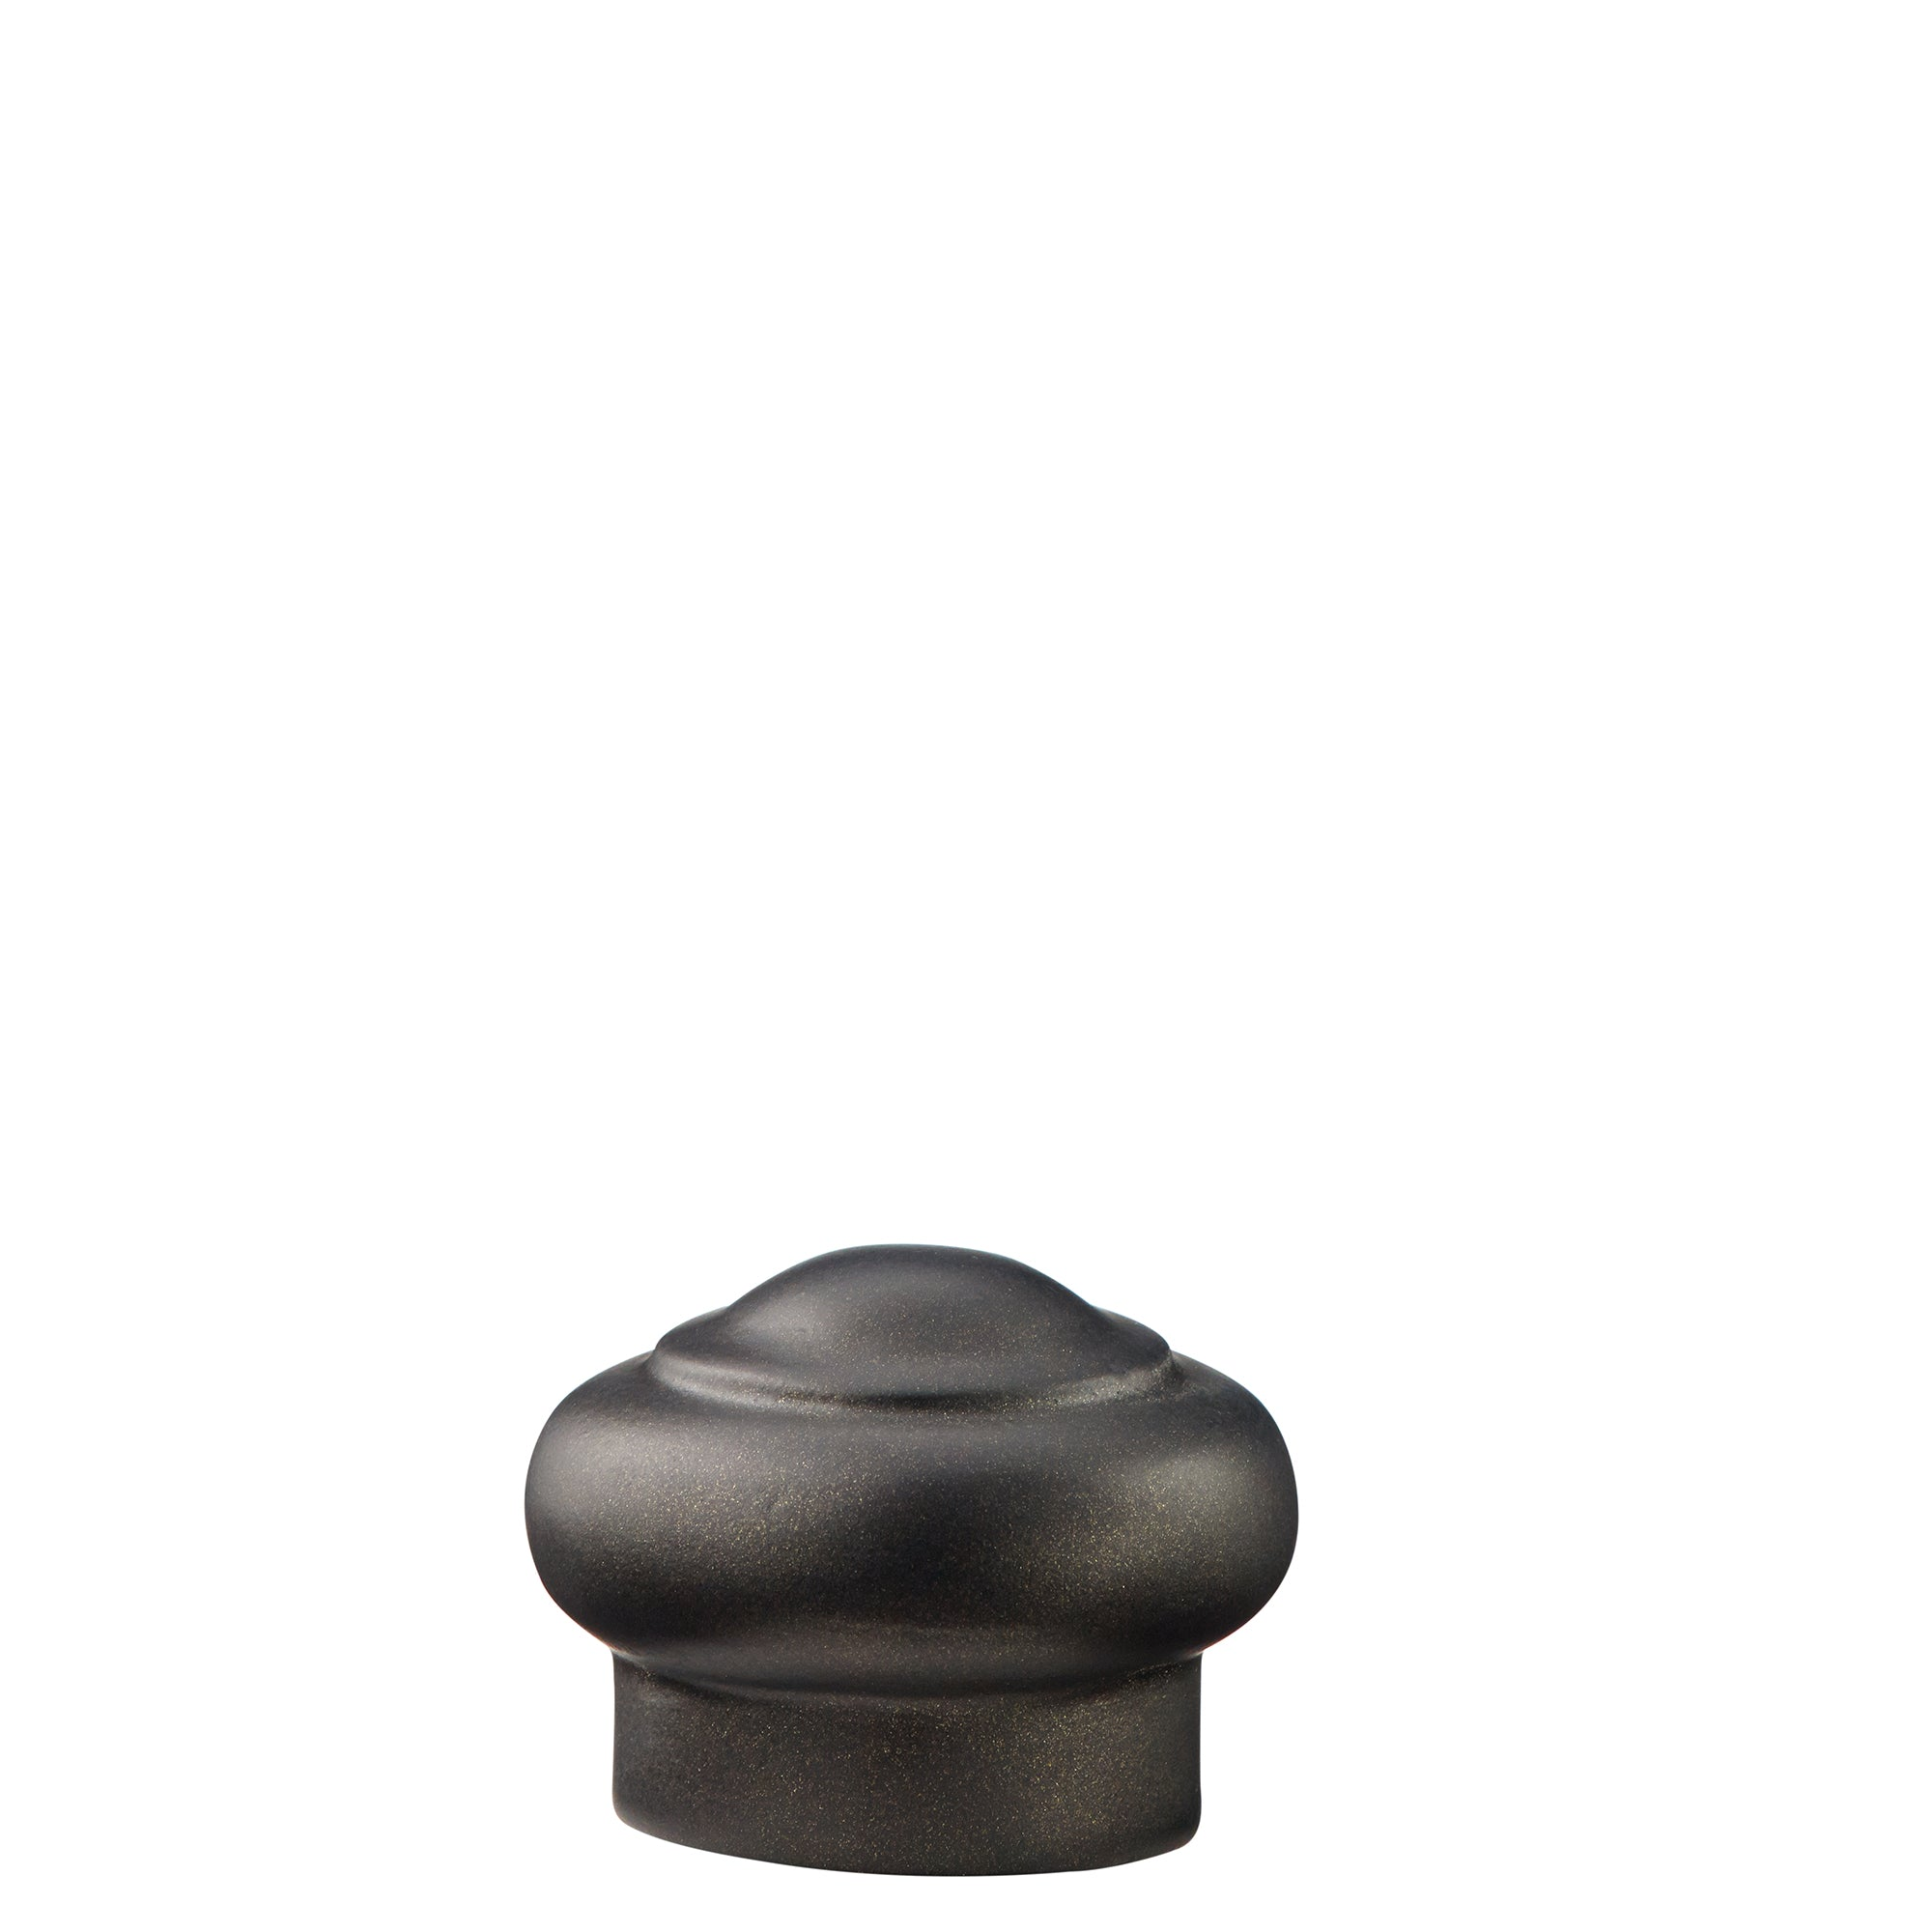 Resin End Cap Finials - Bronze